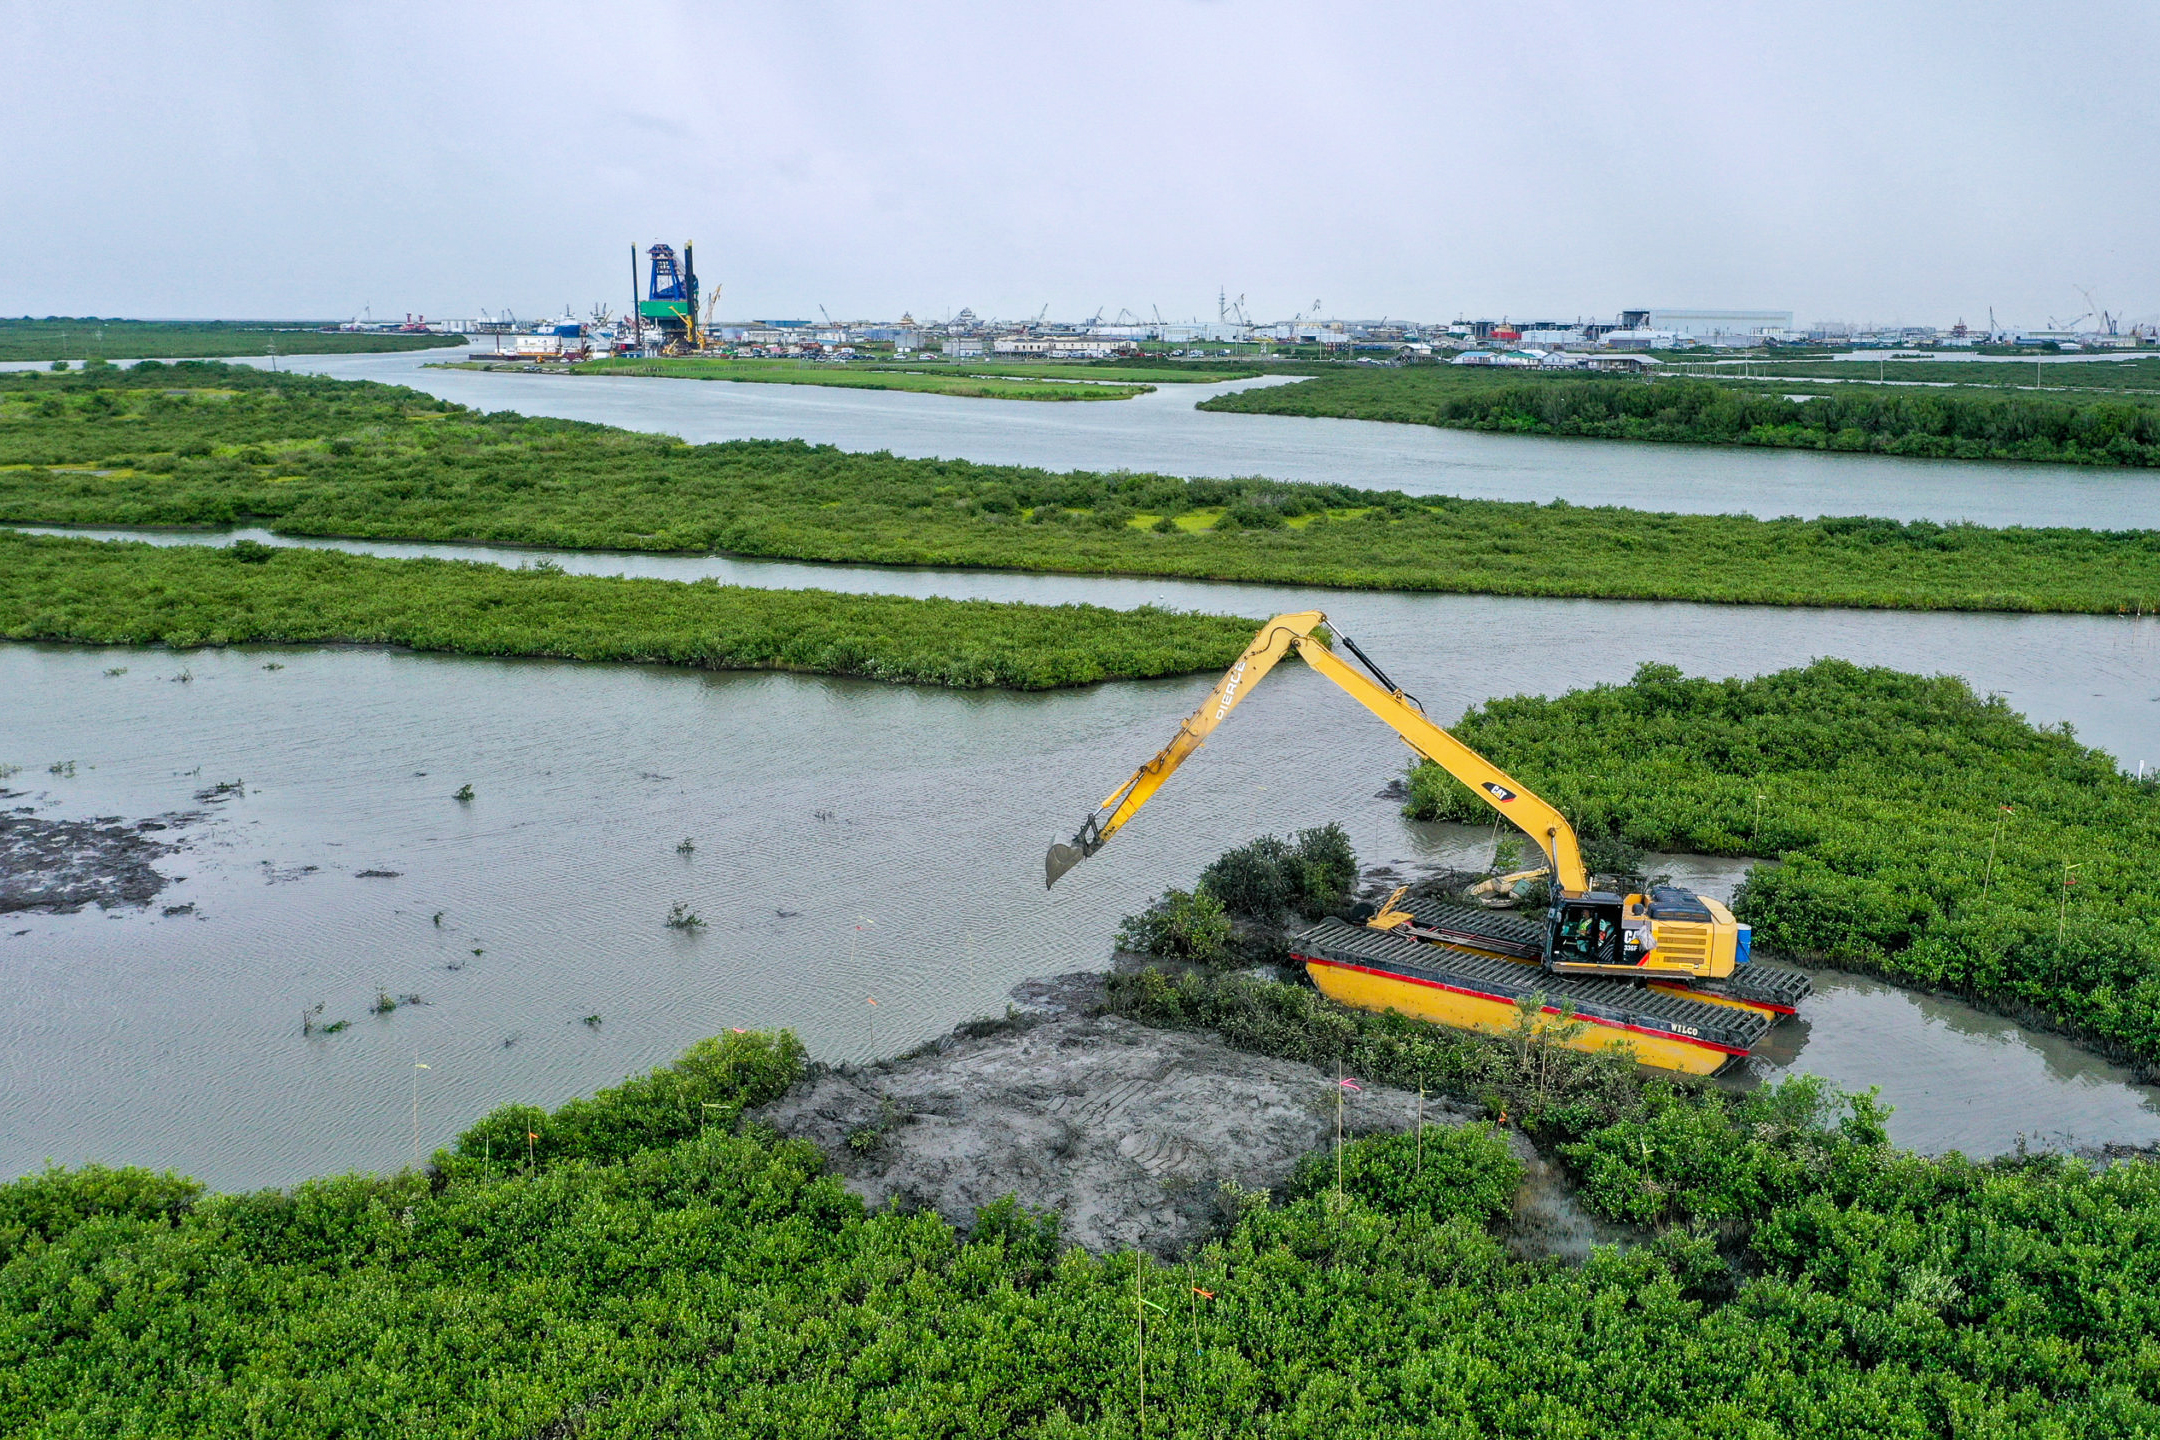 Aerial view of wetlands and marsh with a large excavator working among the landscape.